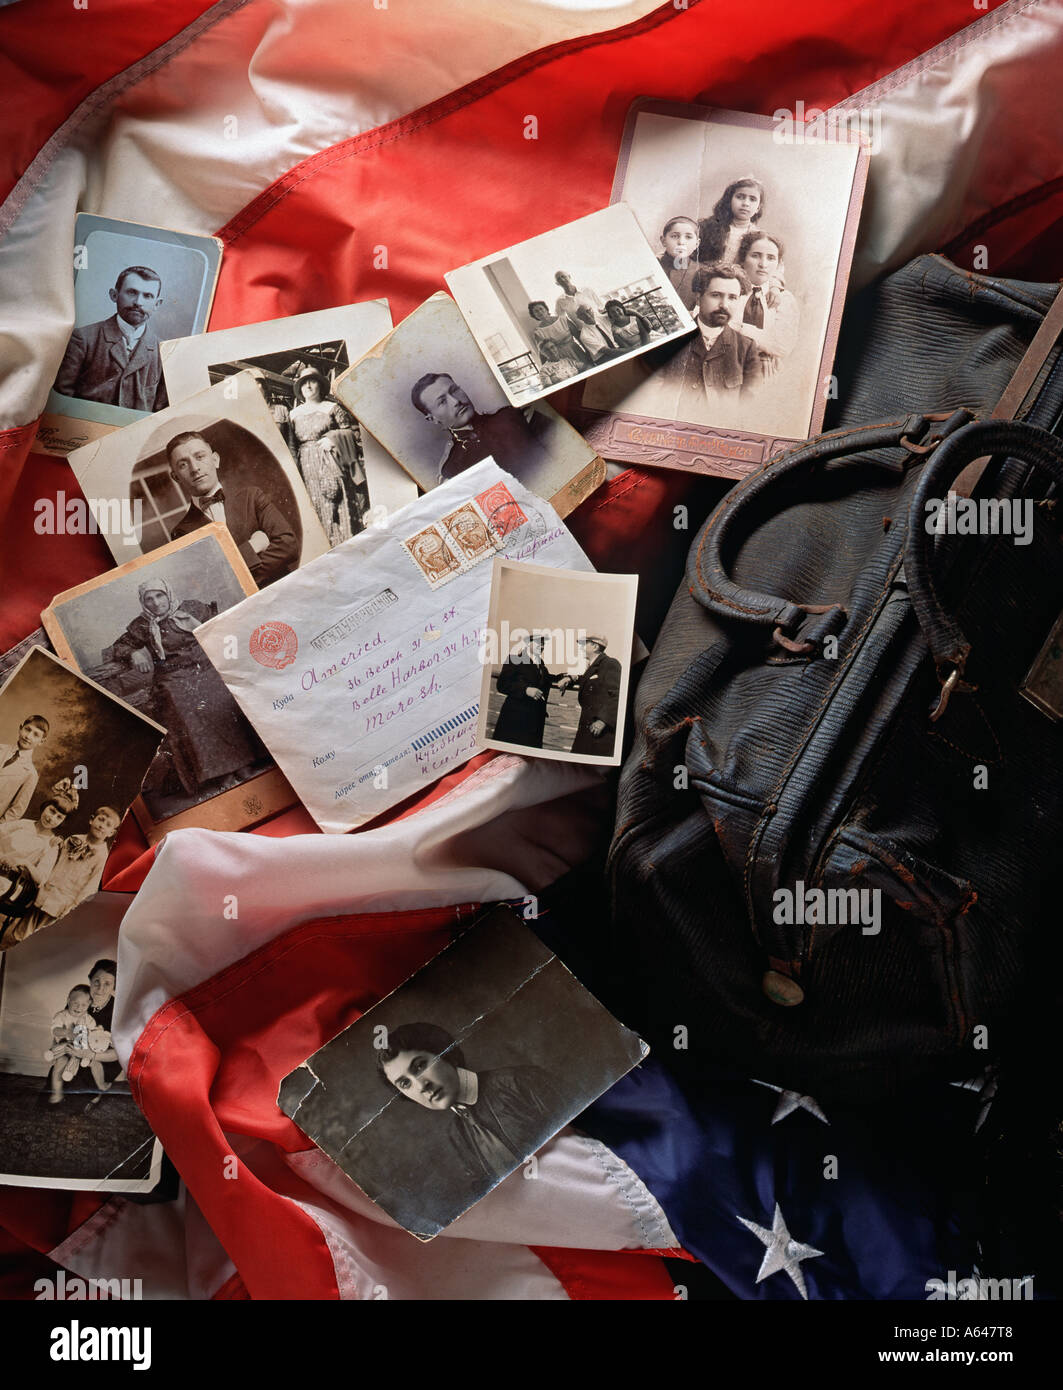 Still life of mementos of Immigrant family USA - Stock Image